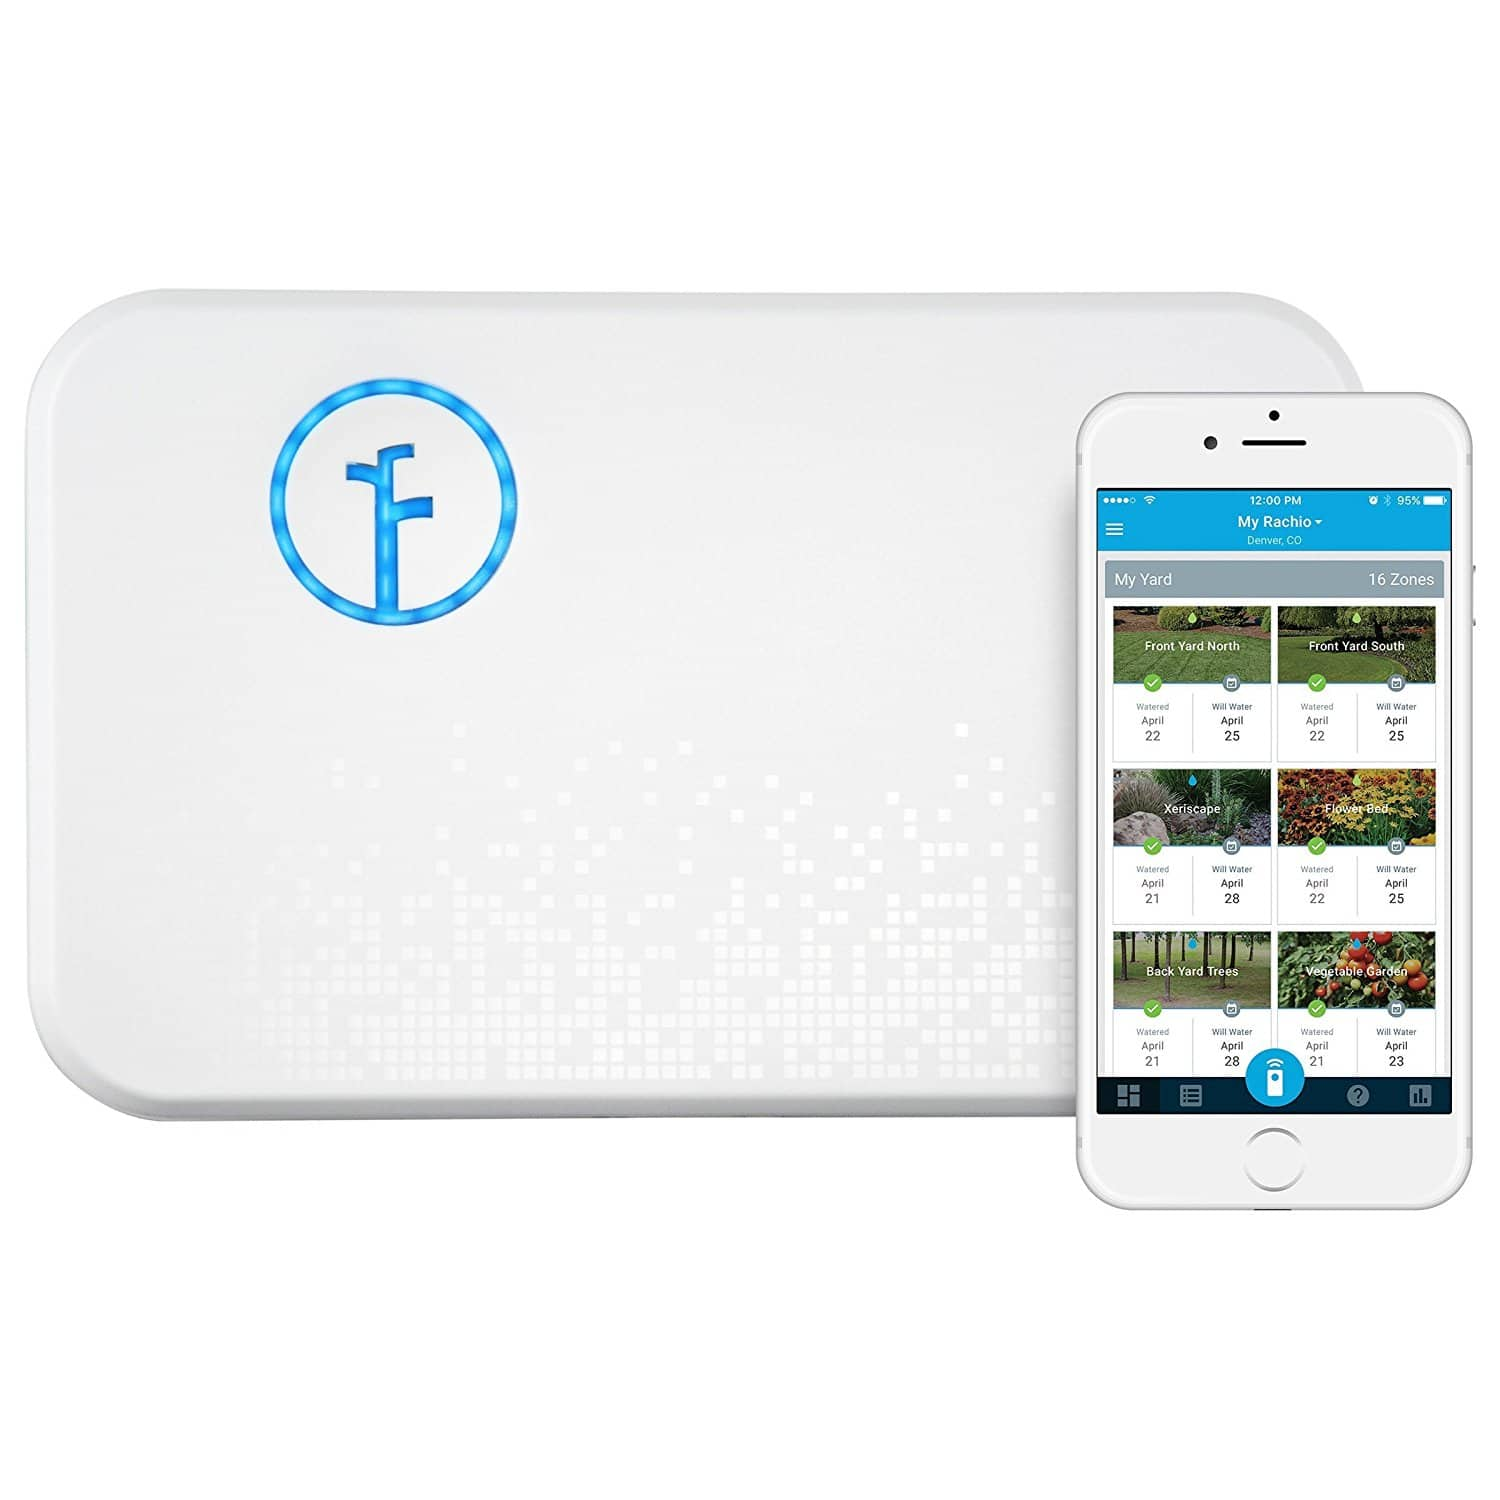 Rachio Smart Sprinkler Controller, WiFi, 16 Zone 2nd Generation $162.49